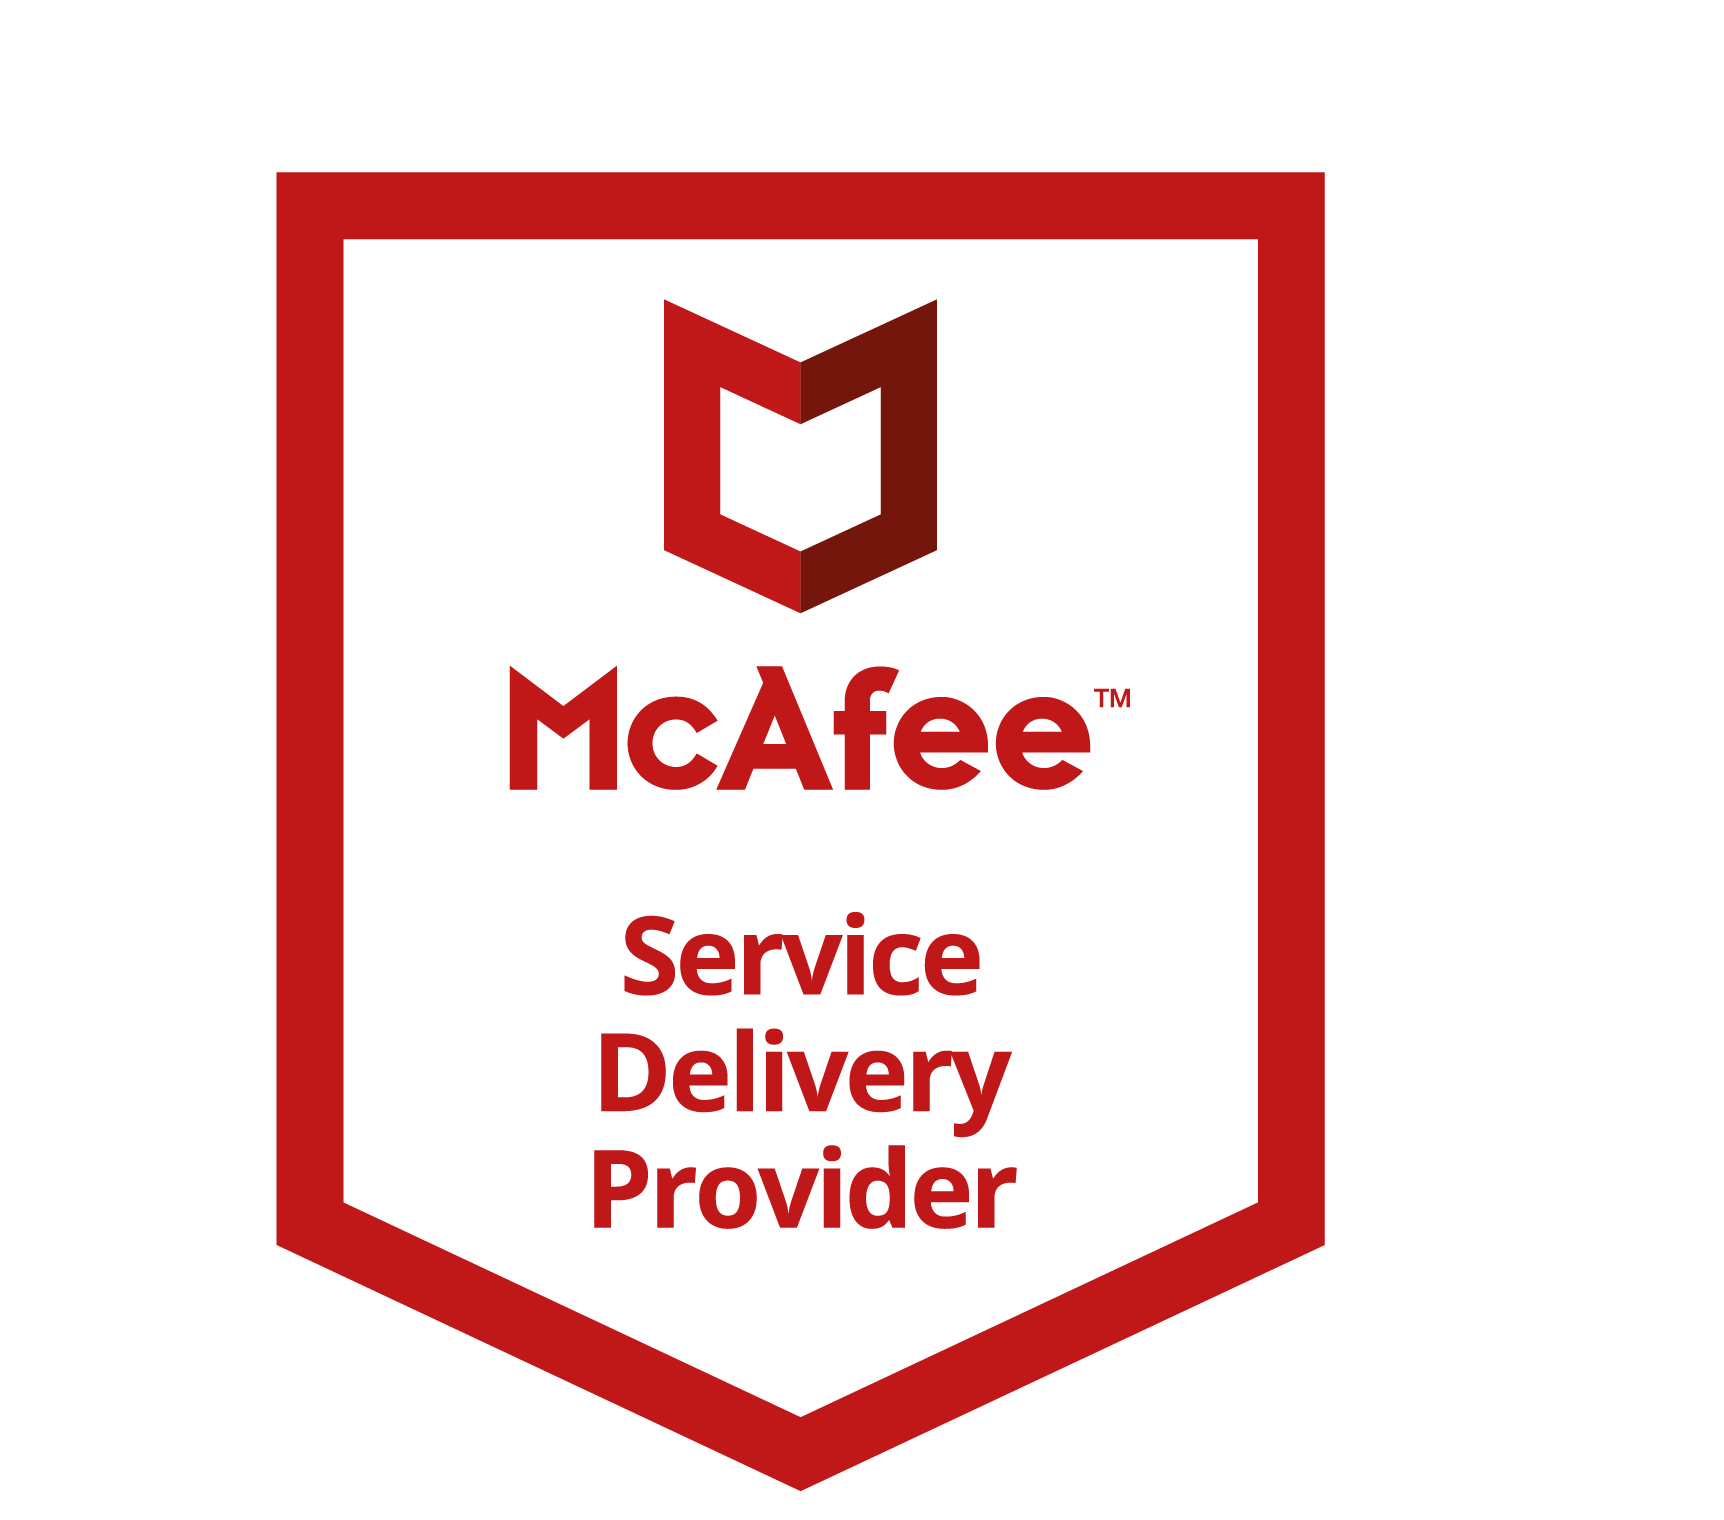 McAFEE SERVICE DELIVERY PROVIDER RGB